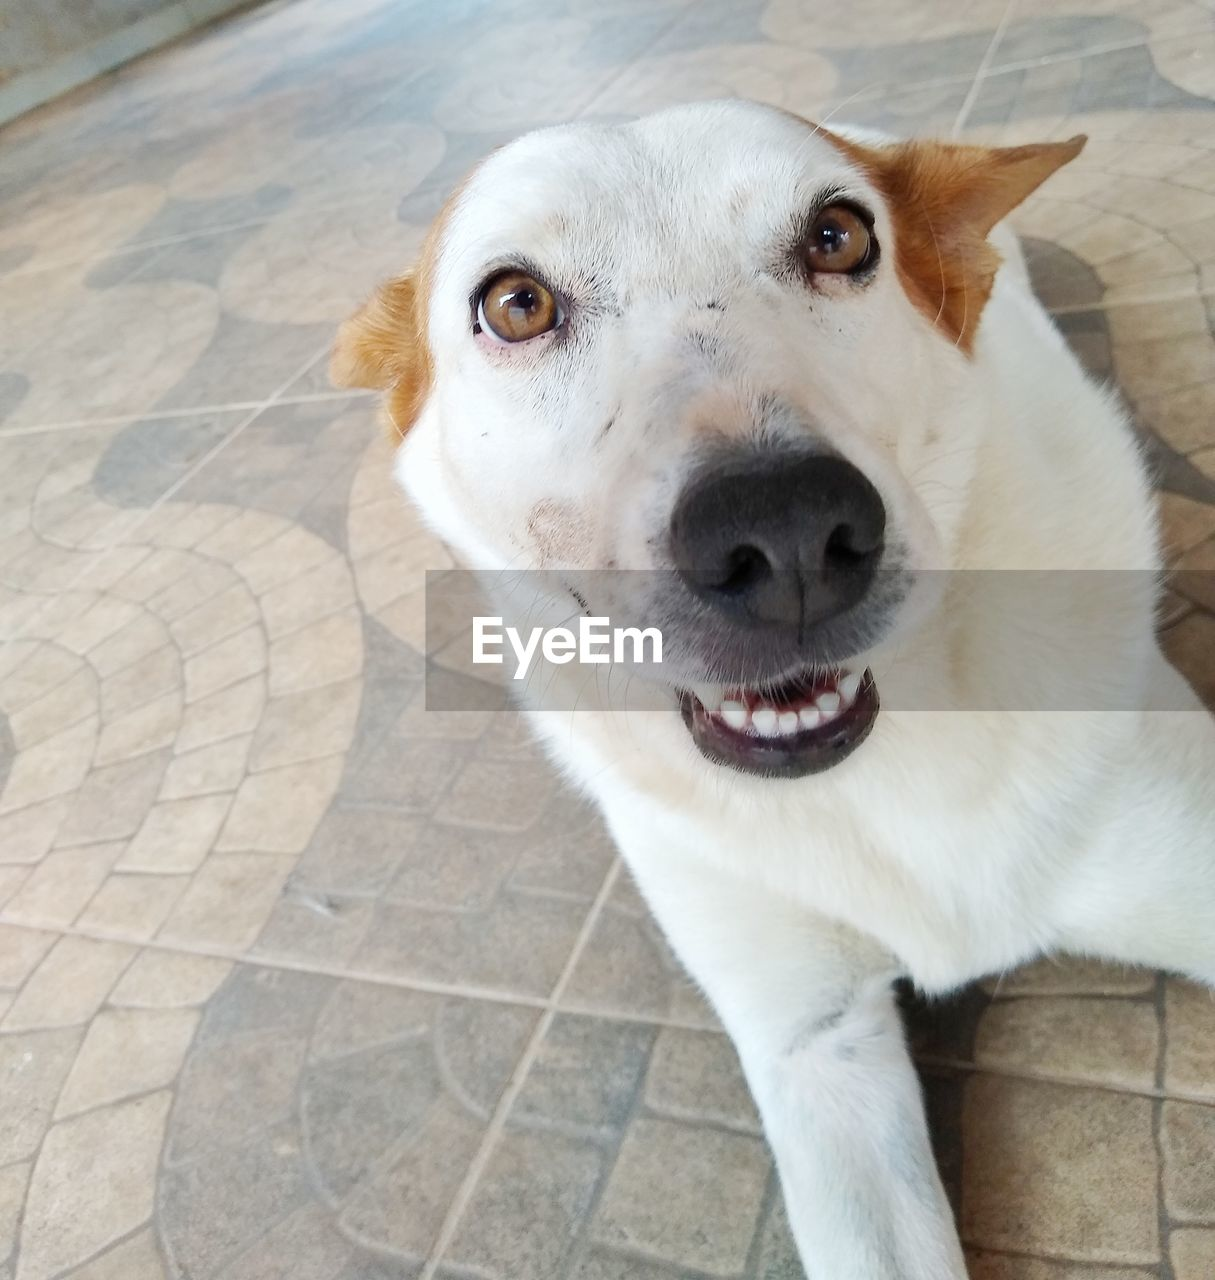 one animal, domestic, domestic animals, pets, mammal, animal themes, animal, dog, canine, vertebrate, looking at camera, portrait, high angle view, flooring, animal body part, close-up, mouth, mouth open, footpath, no people, tiled floor, animal head, animal mouth, whisker